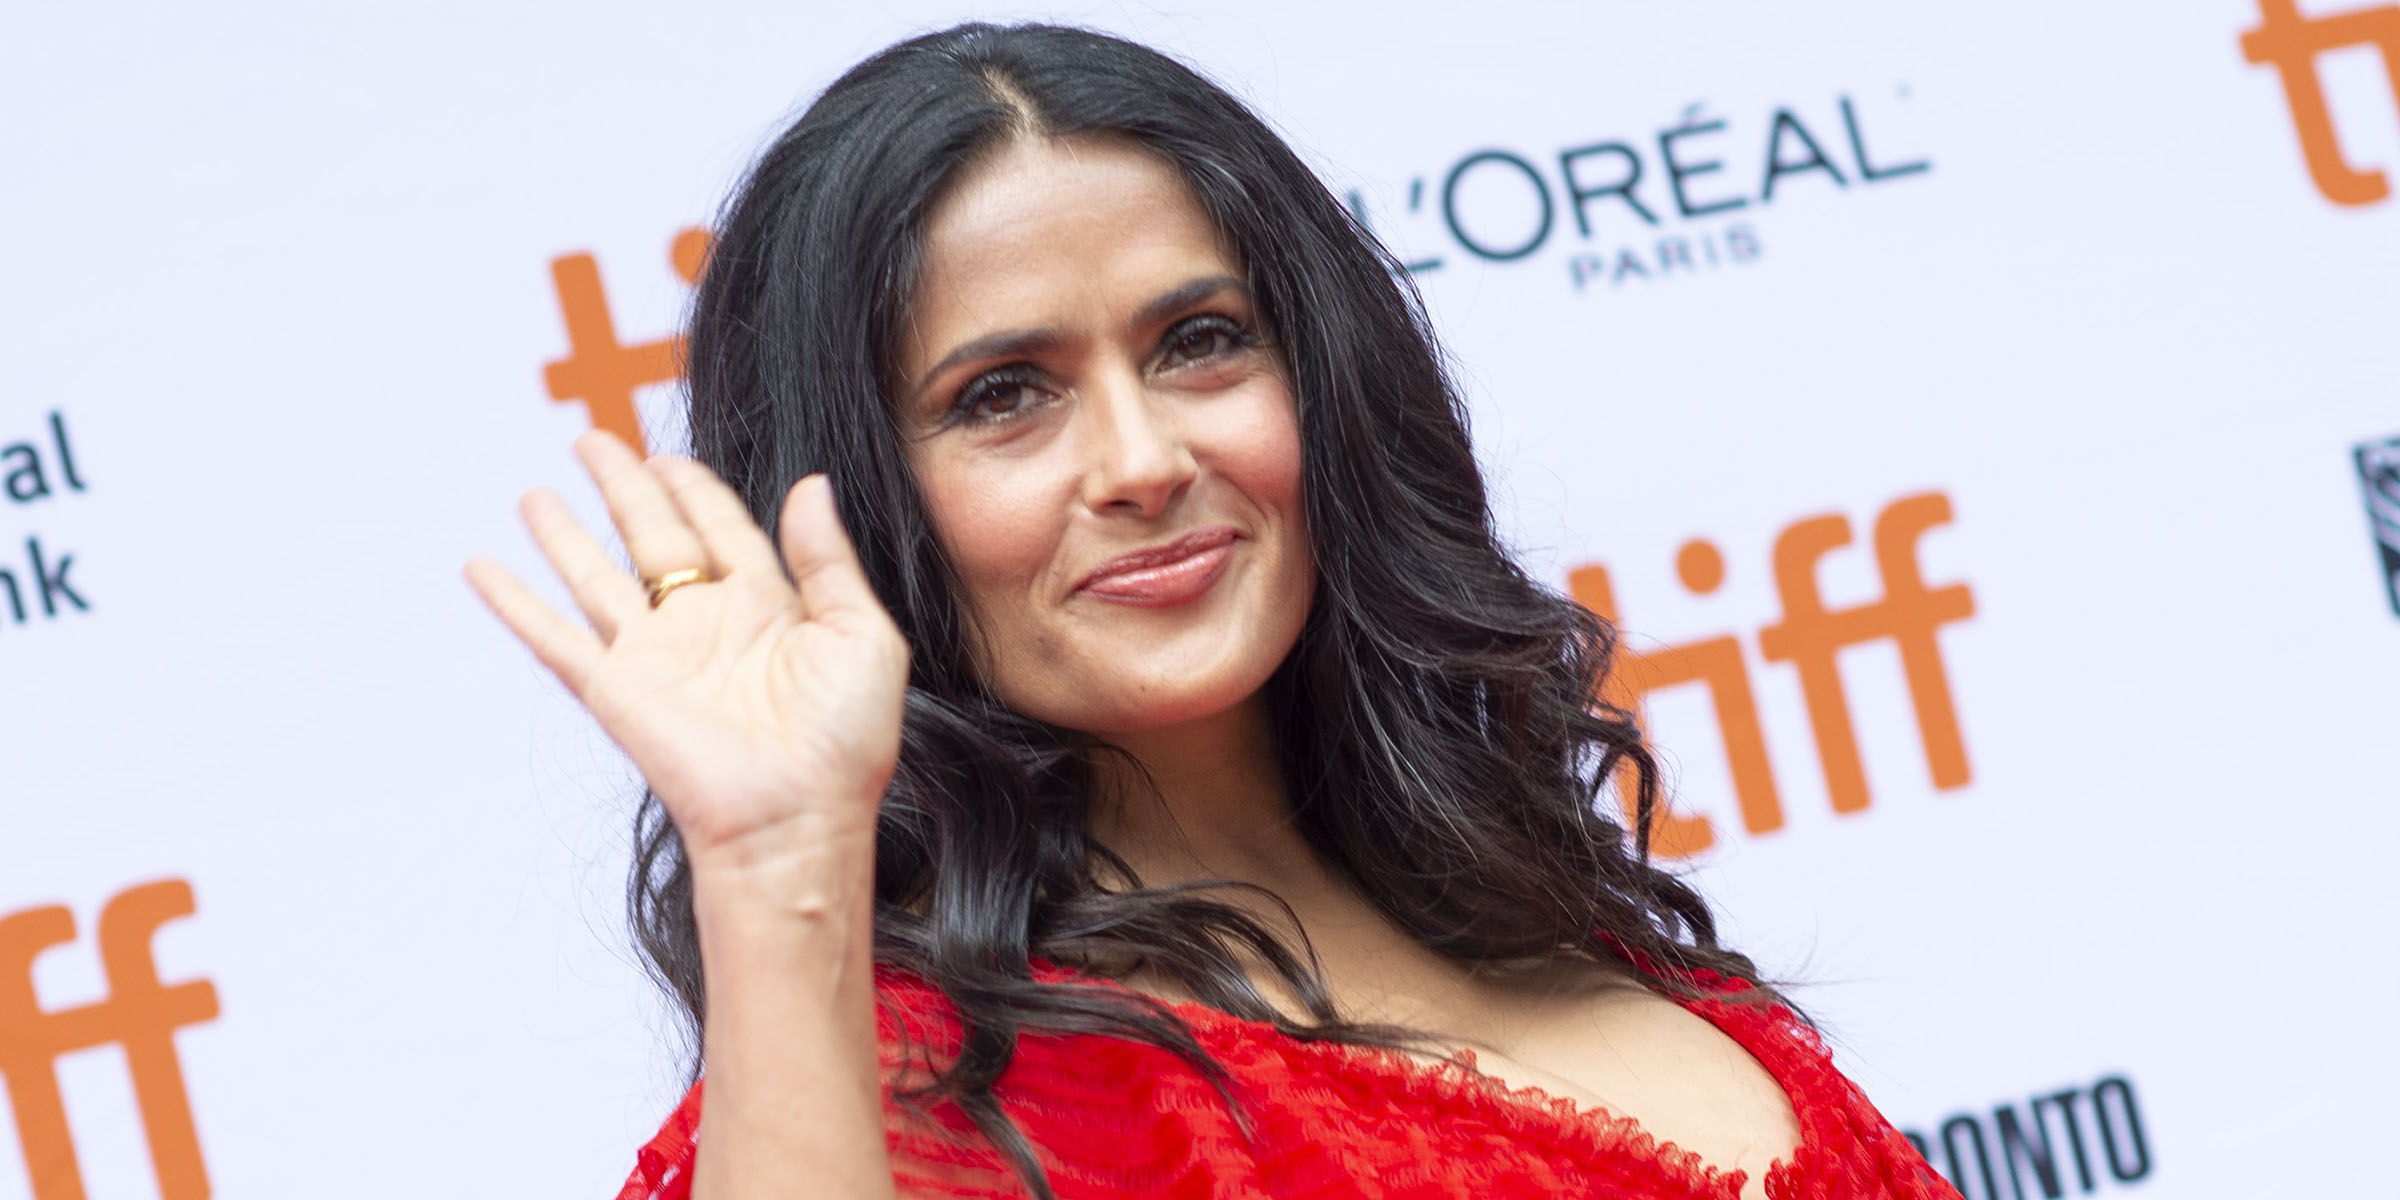 Salma Hayek shares revealing acupuncture photo on Instagram